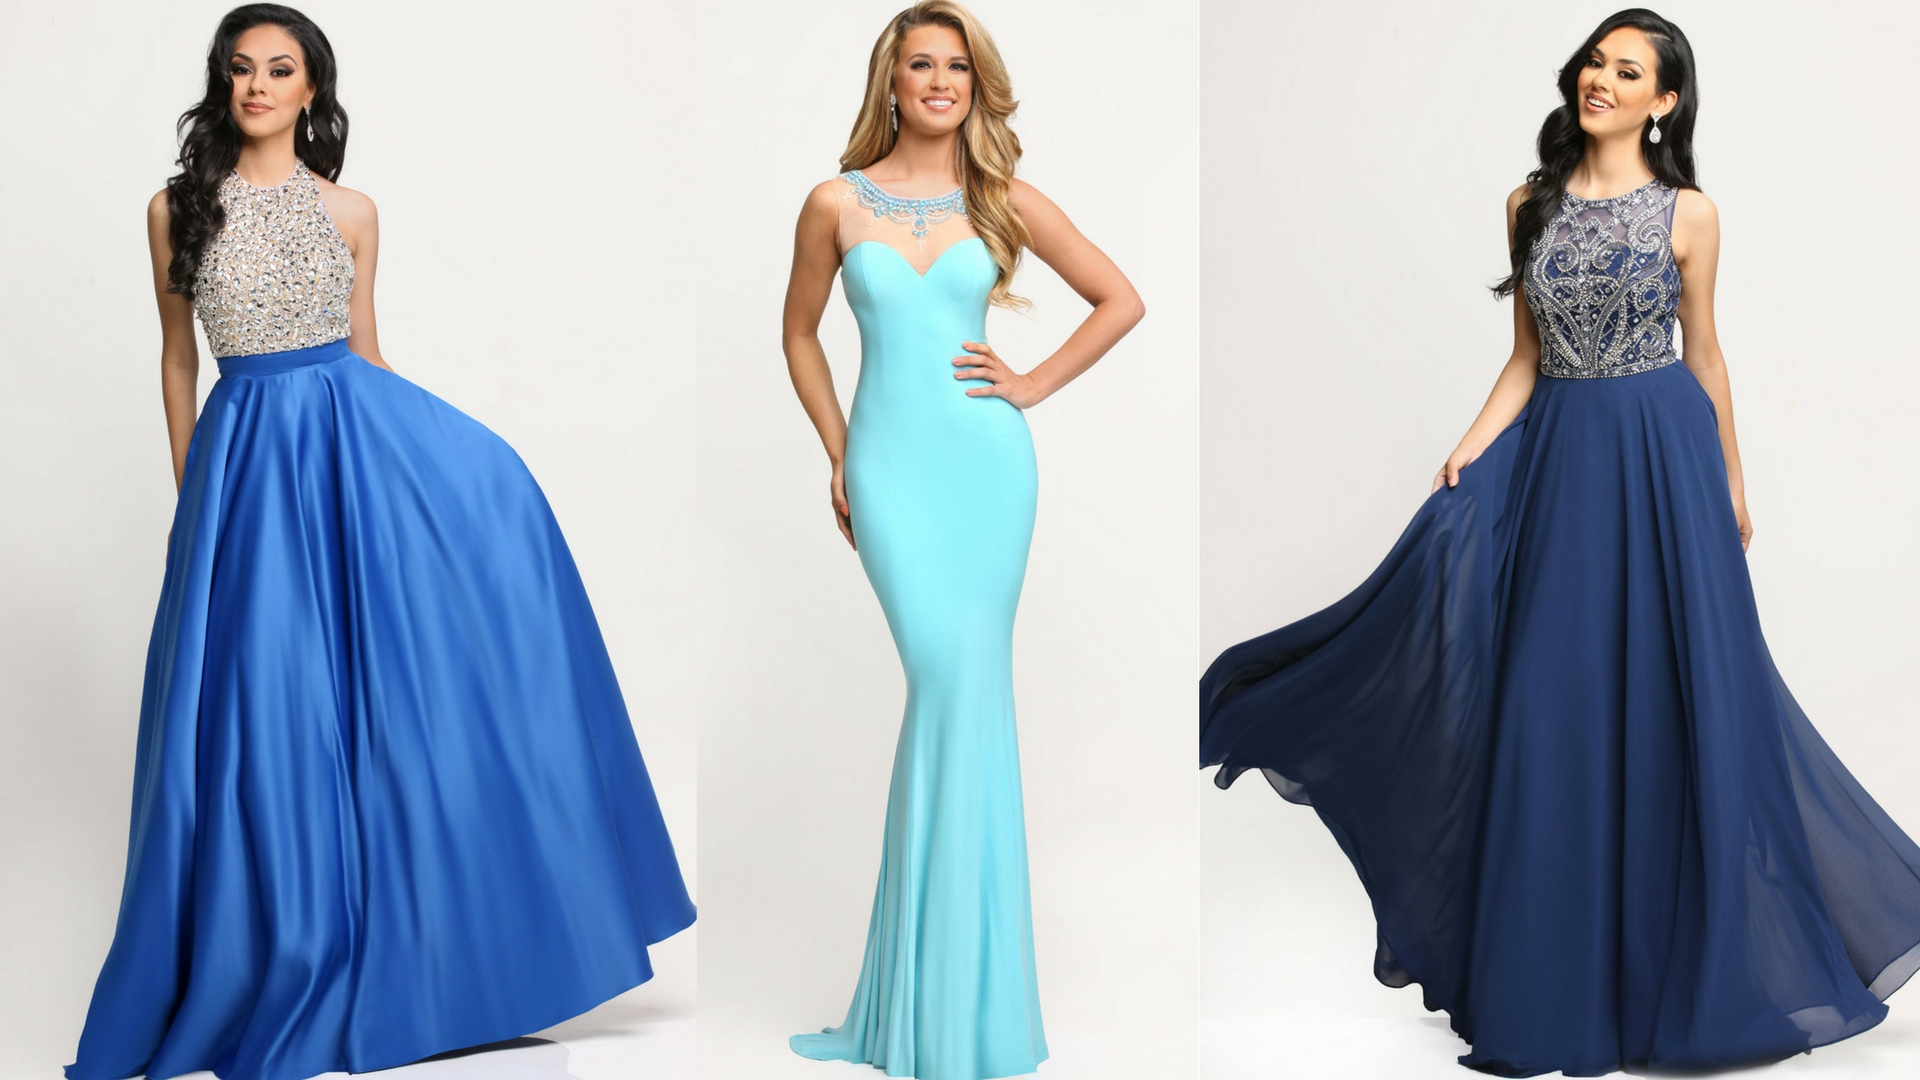 Beautiful in Blue: 9 Navy & Turquoise Gowns for Prom 2017 - Sparkle ...